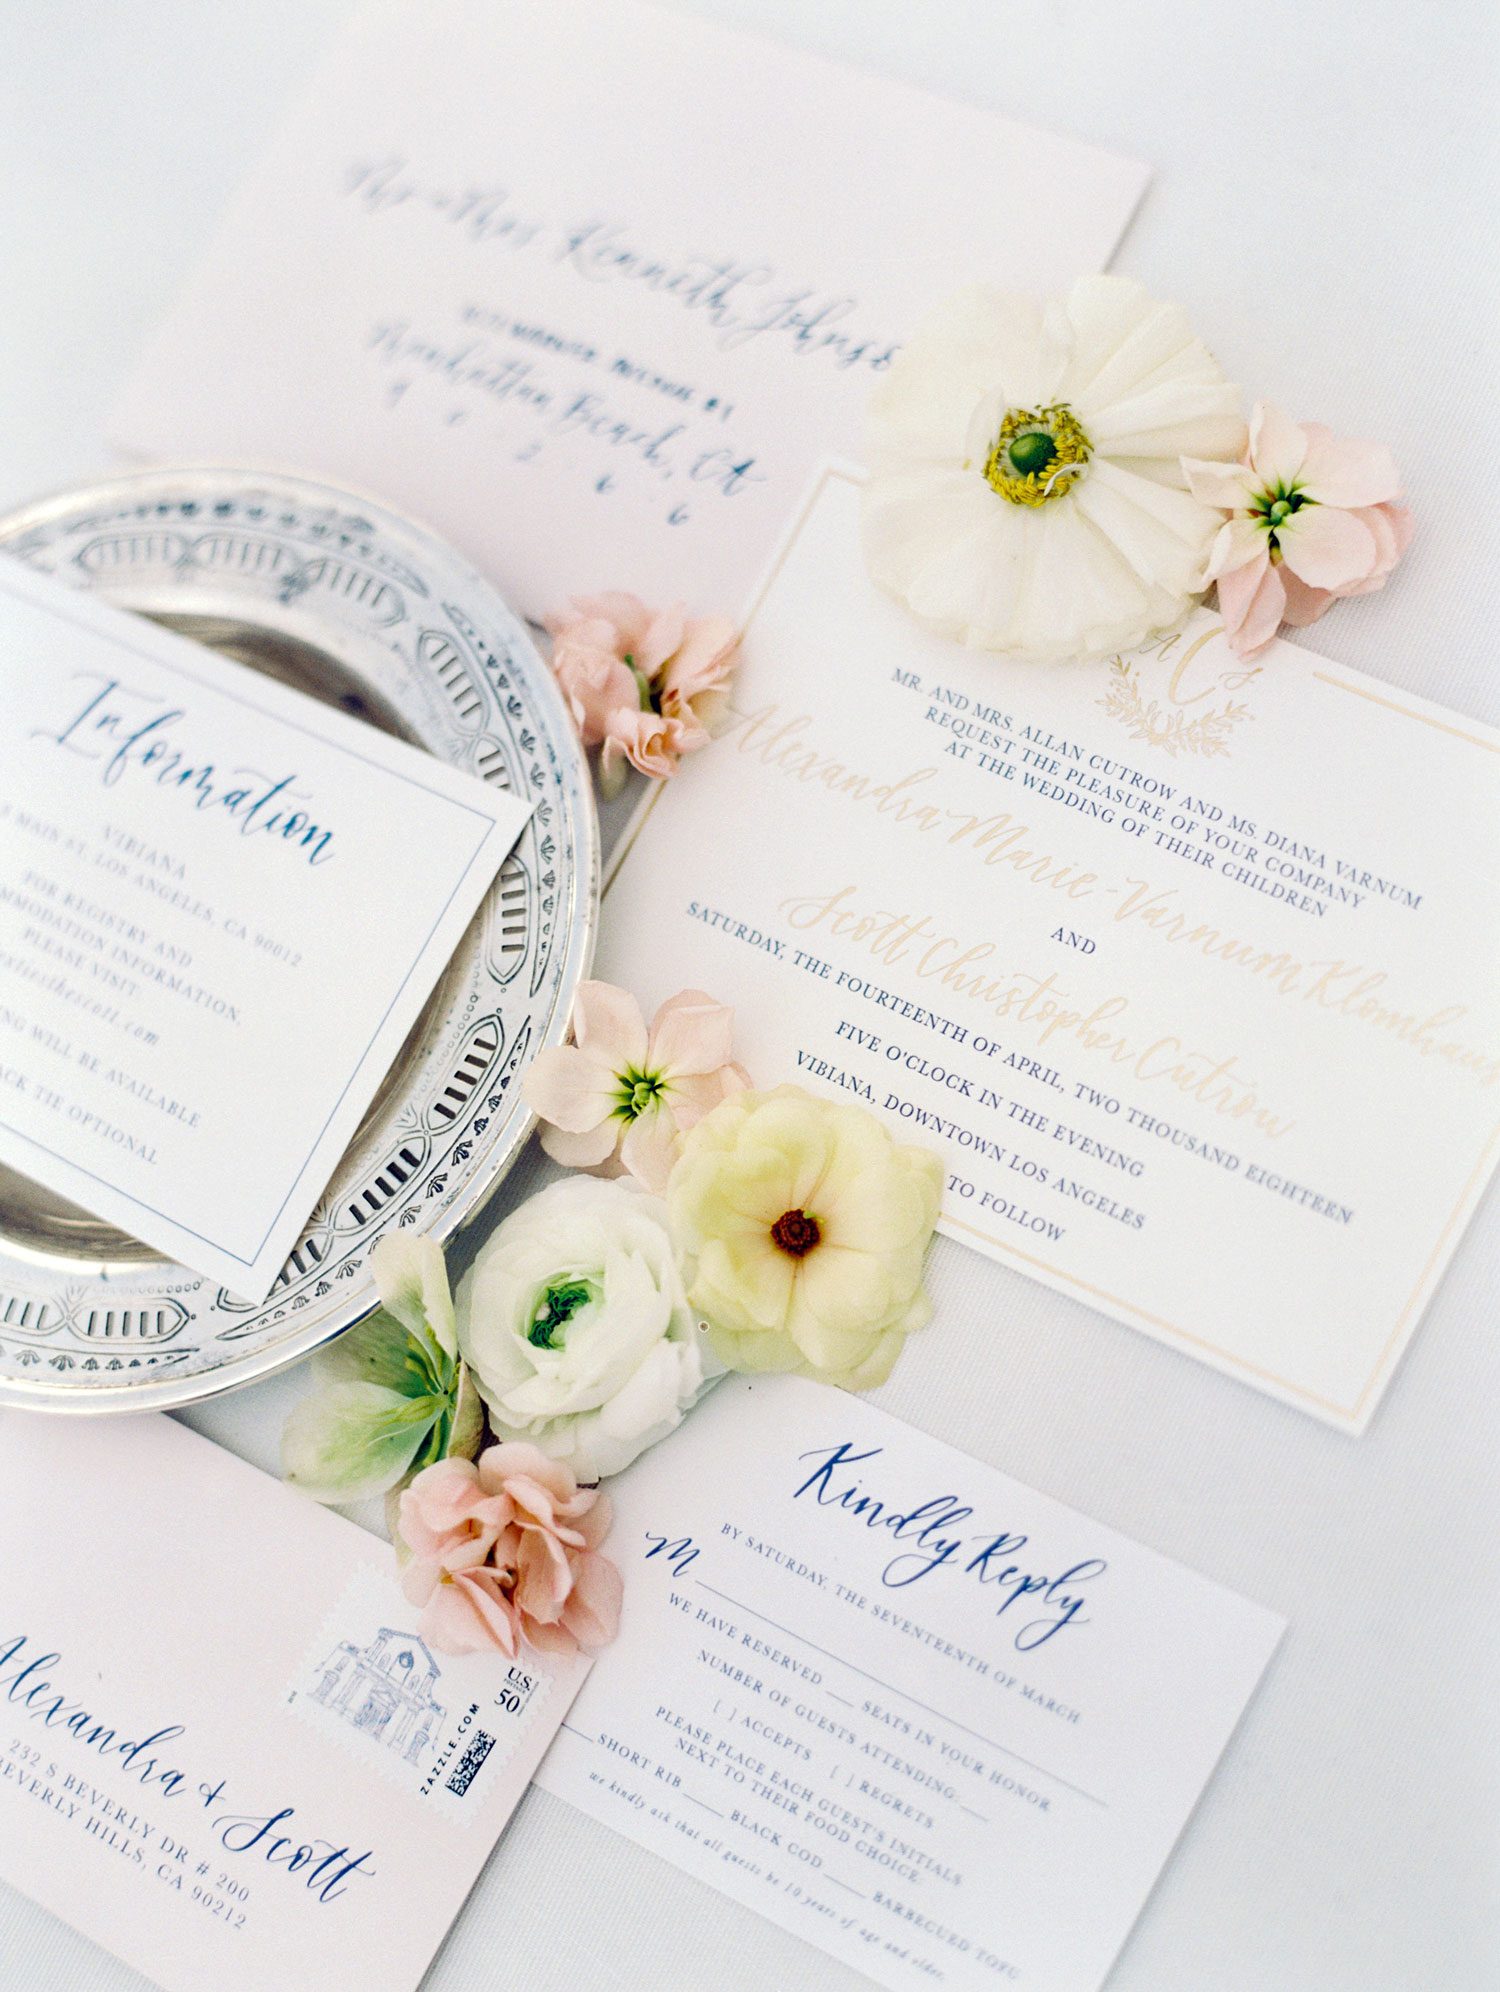 pantone color of the year 2020 classic blue wedding ideas blue calligraphy on invitation